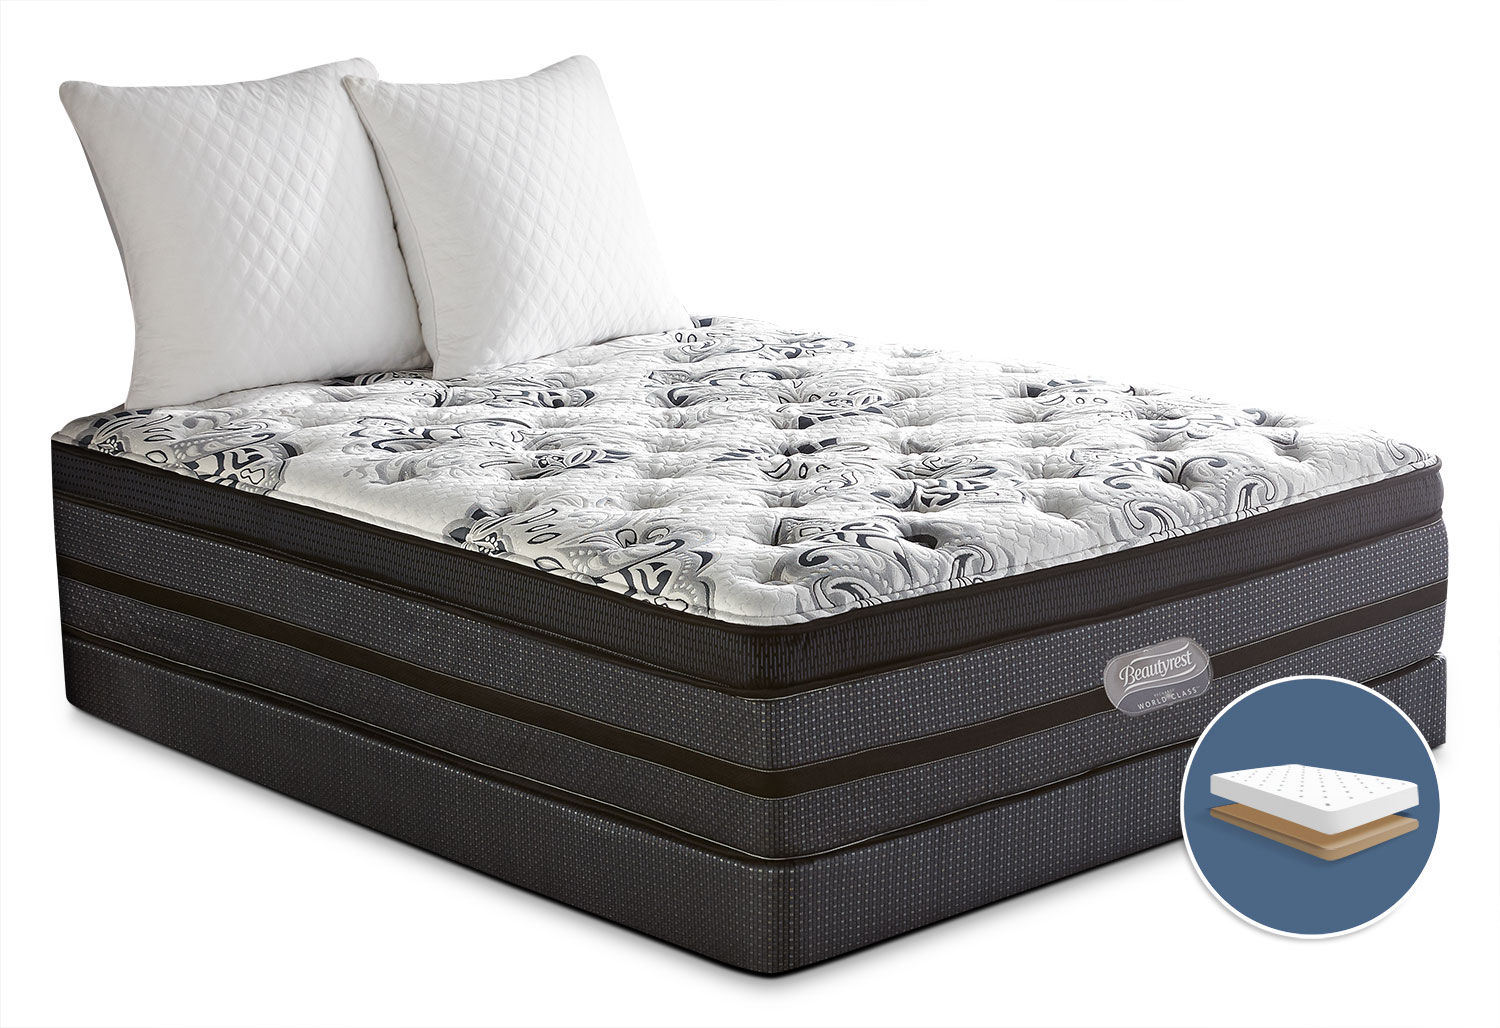 Mattresses and Bedding - Simmons Beautyrest® World Class Paxson Comfort-Top Firm Low-Profile King Mattress Set